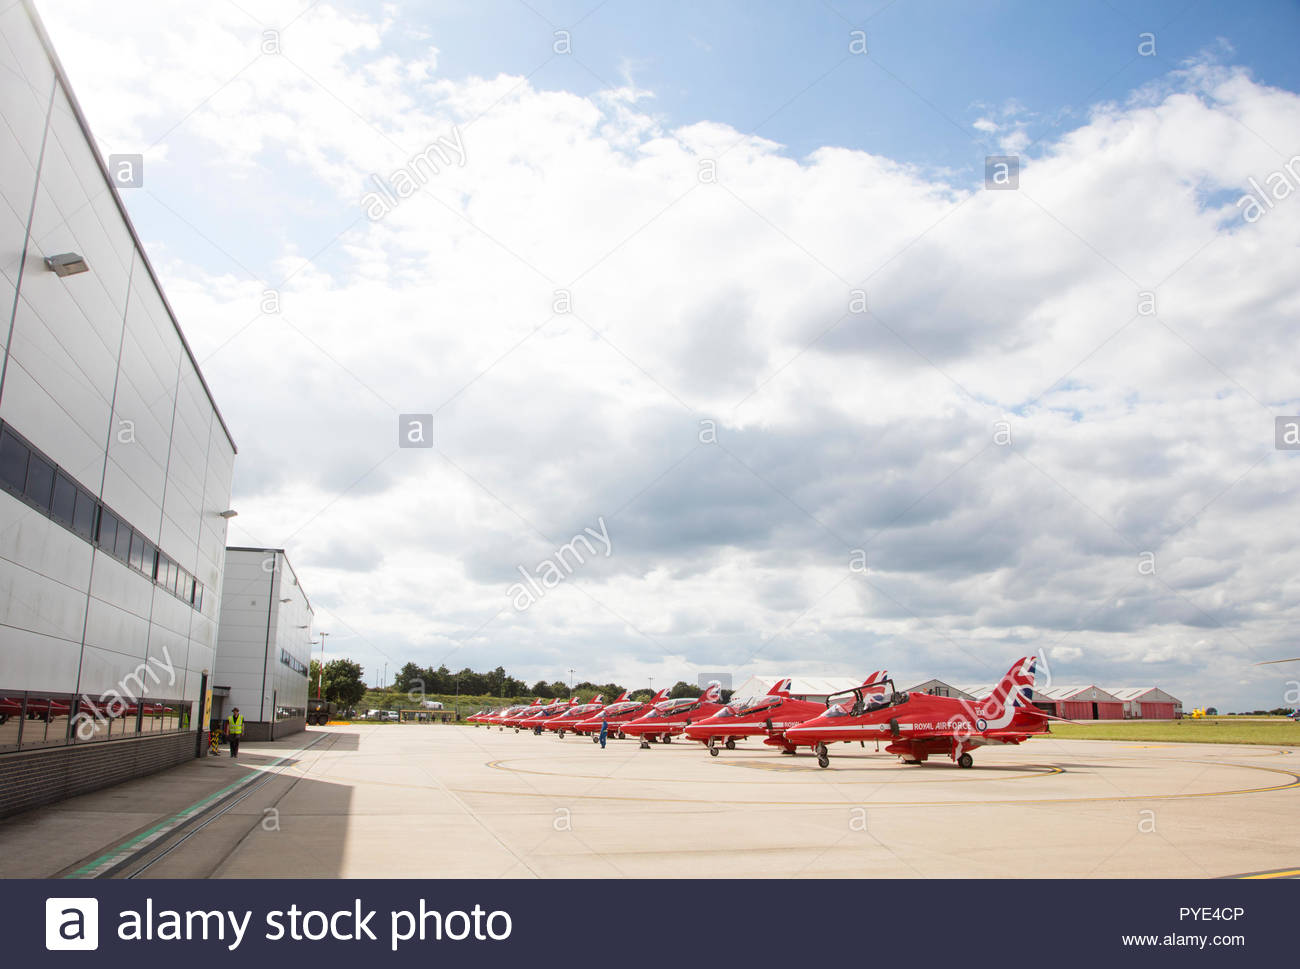 Row of Red Arrows airplanes on RAF Scrampton, UK - Stock Image